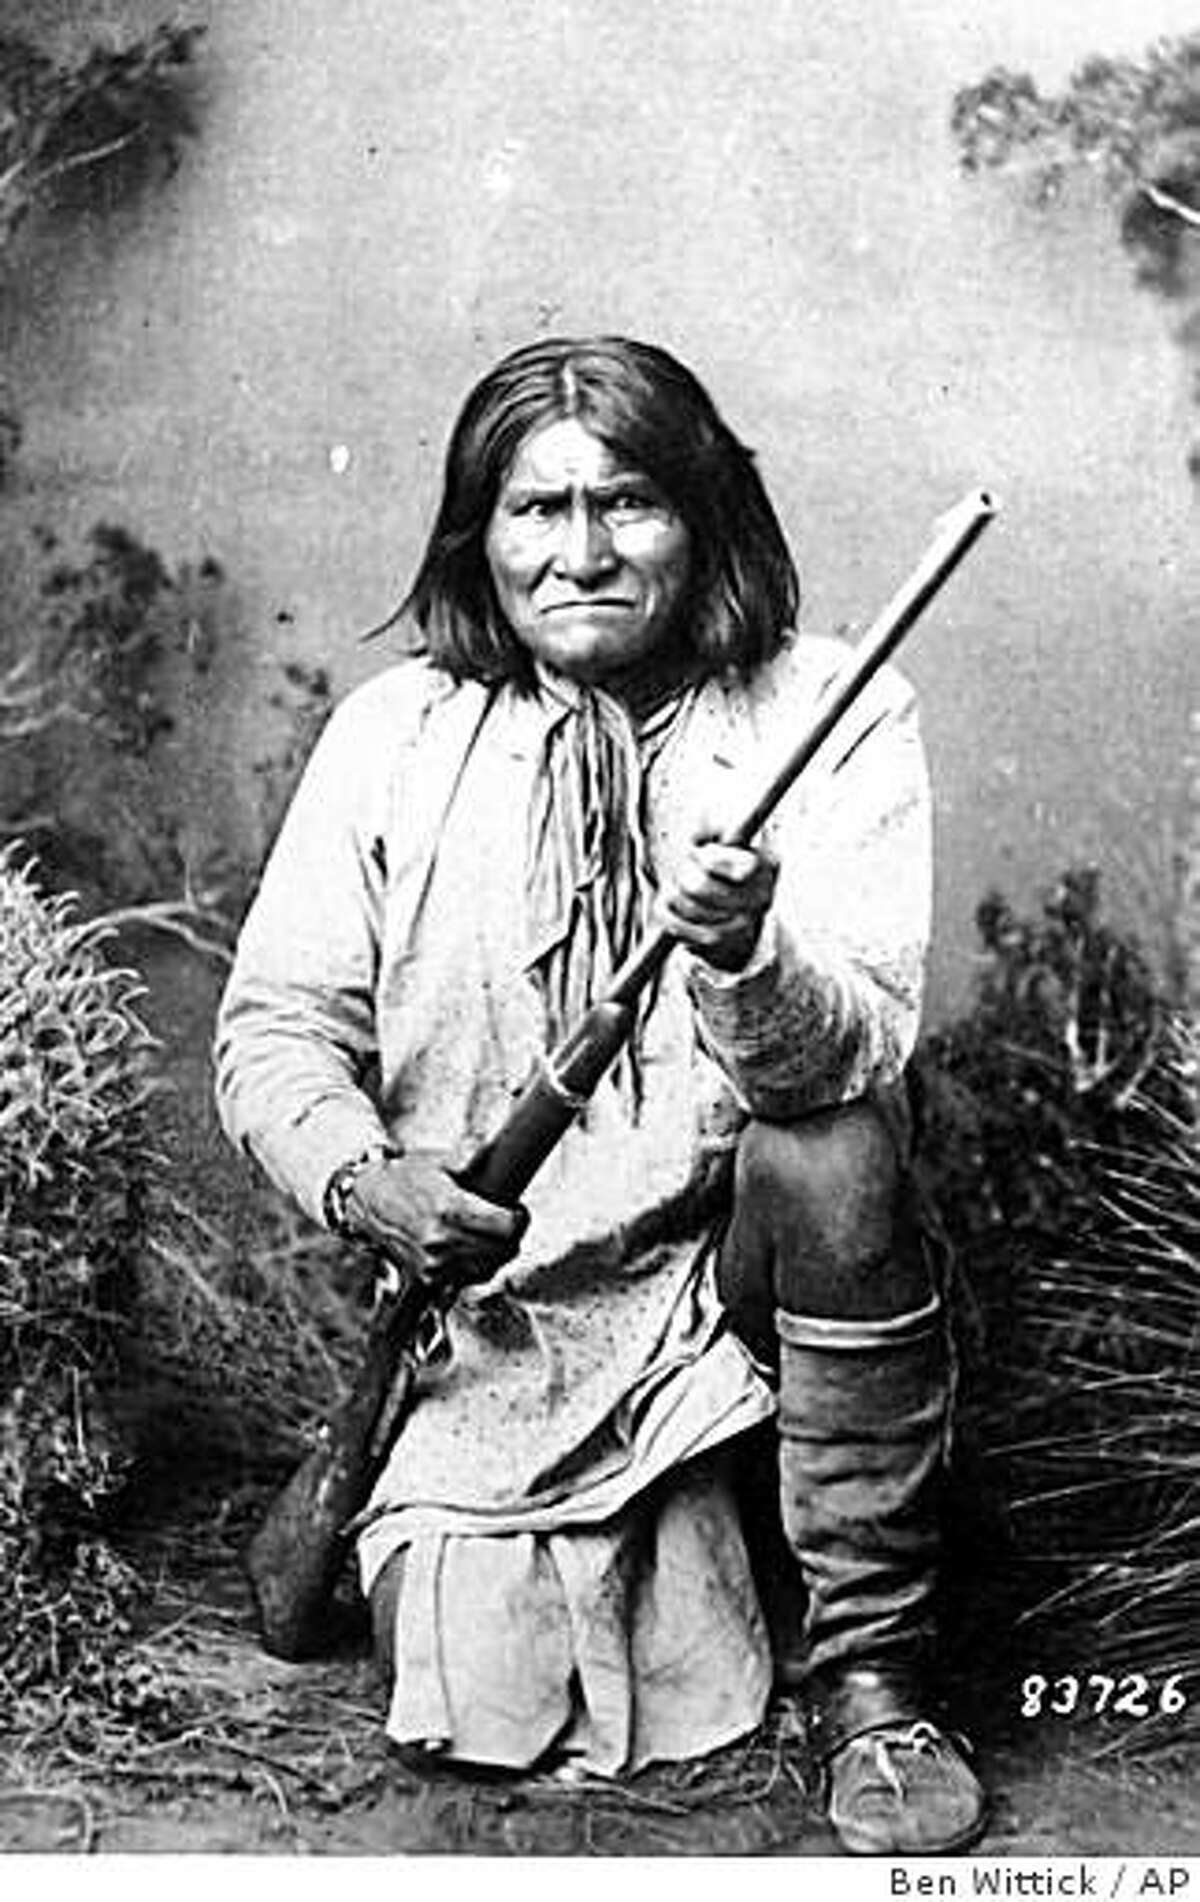 ** ADVANCE FOR SUNDAY, MAY 17 **This photo, provided by the National Archives, shows the famed Indian warrior Geronimo, a Chiricahua Apache, posing with a rifle in 1887. Historians say that many of the legends surrounding Geronimo are more myth than reality. (AP Photo/National Archives, Ben Wittick)